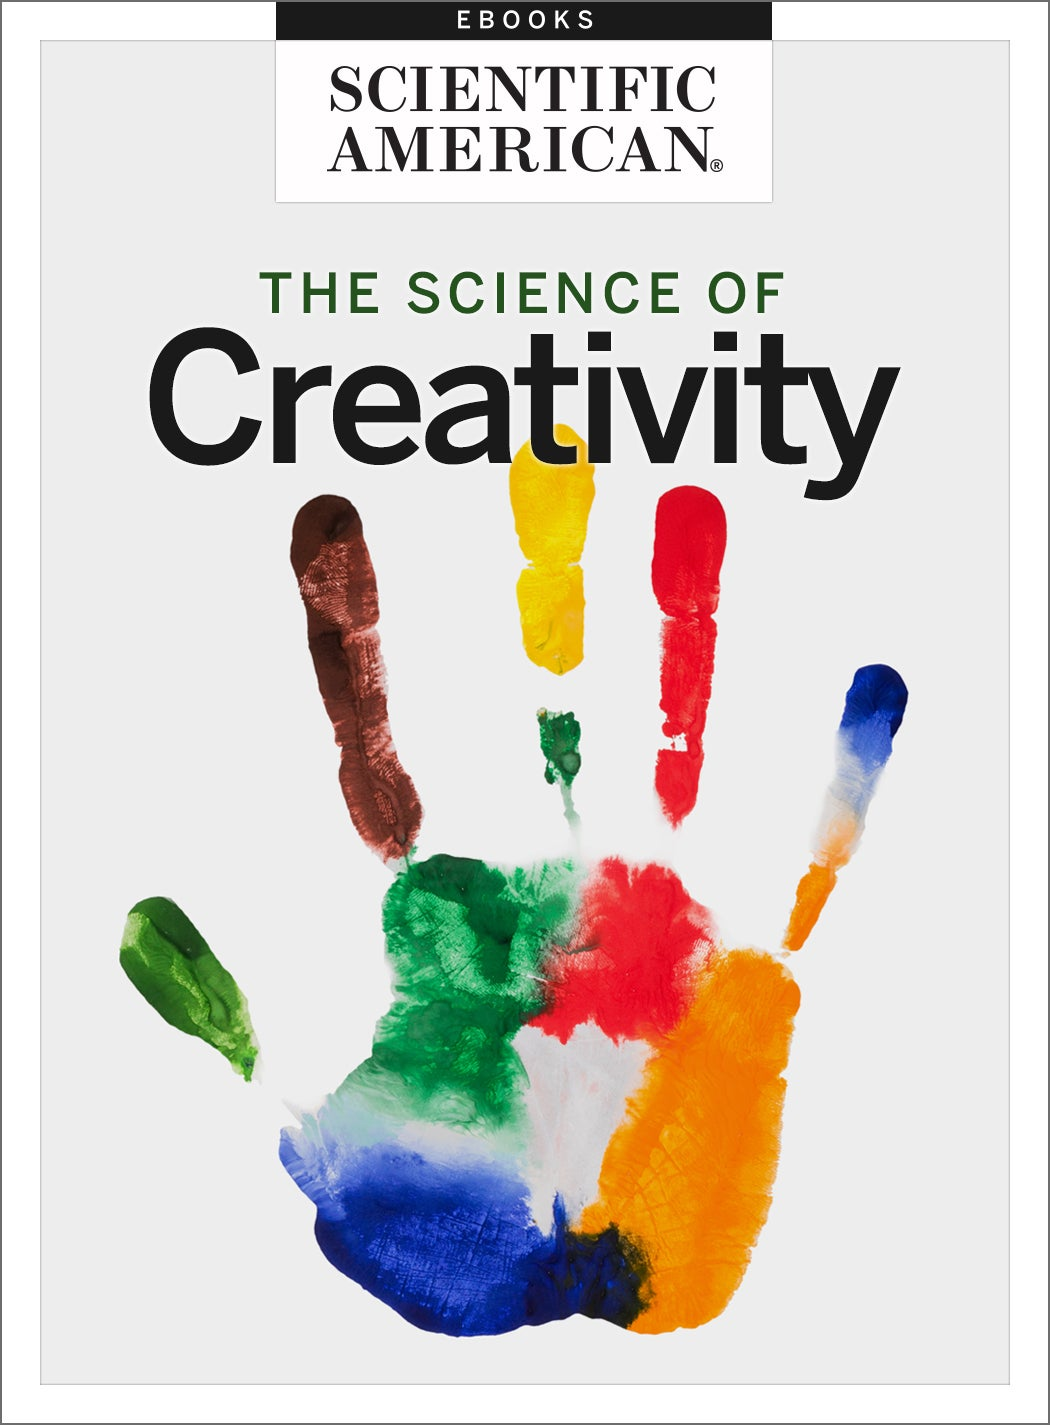 The Concept of Creativity in Science and Art